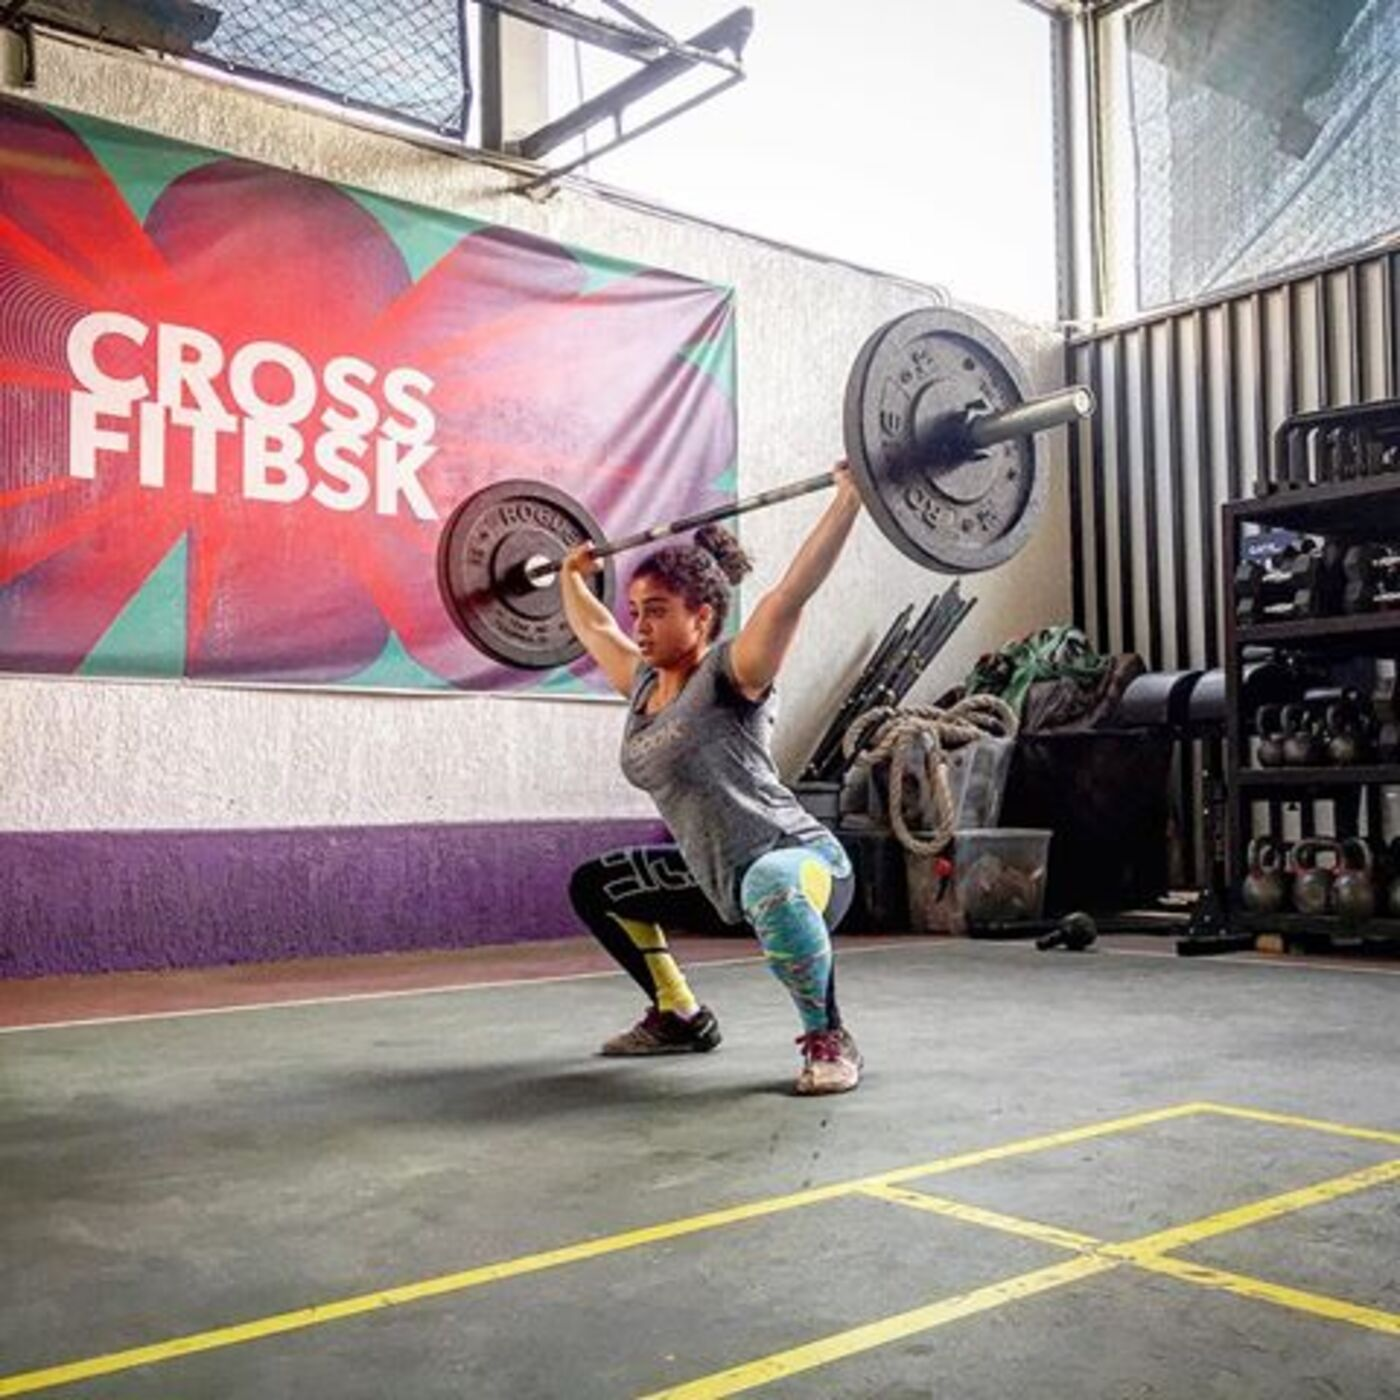 This is Saja :World Class Athlete, Ranked 53rd Globally Amongst Teens, 6th in Egypt, Teen Phenome Talks about How She is Becoming the Best in her Field